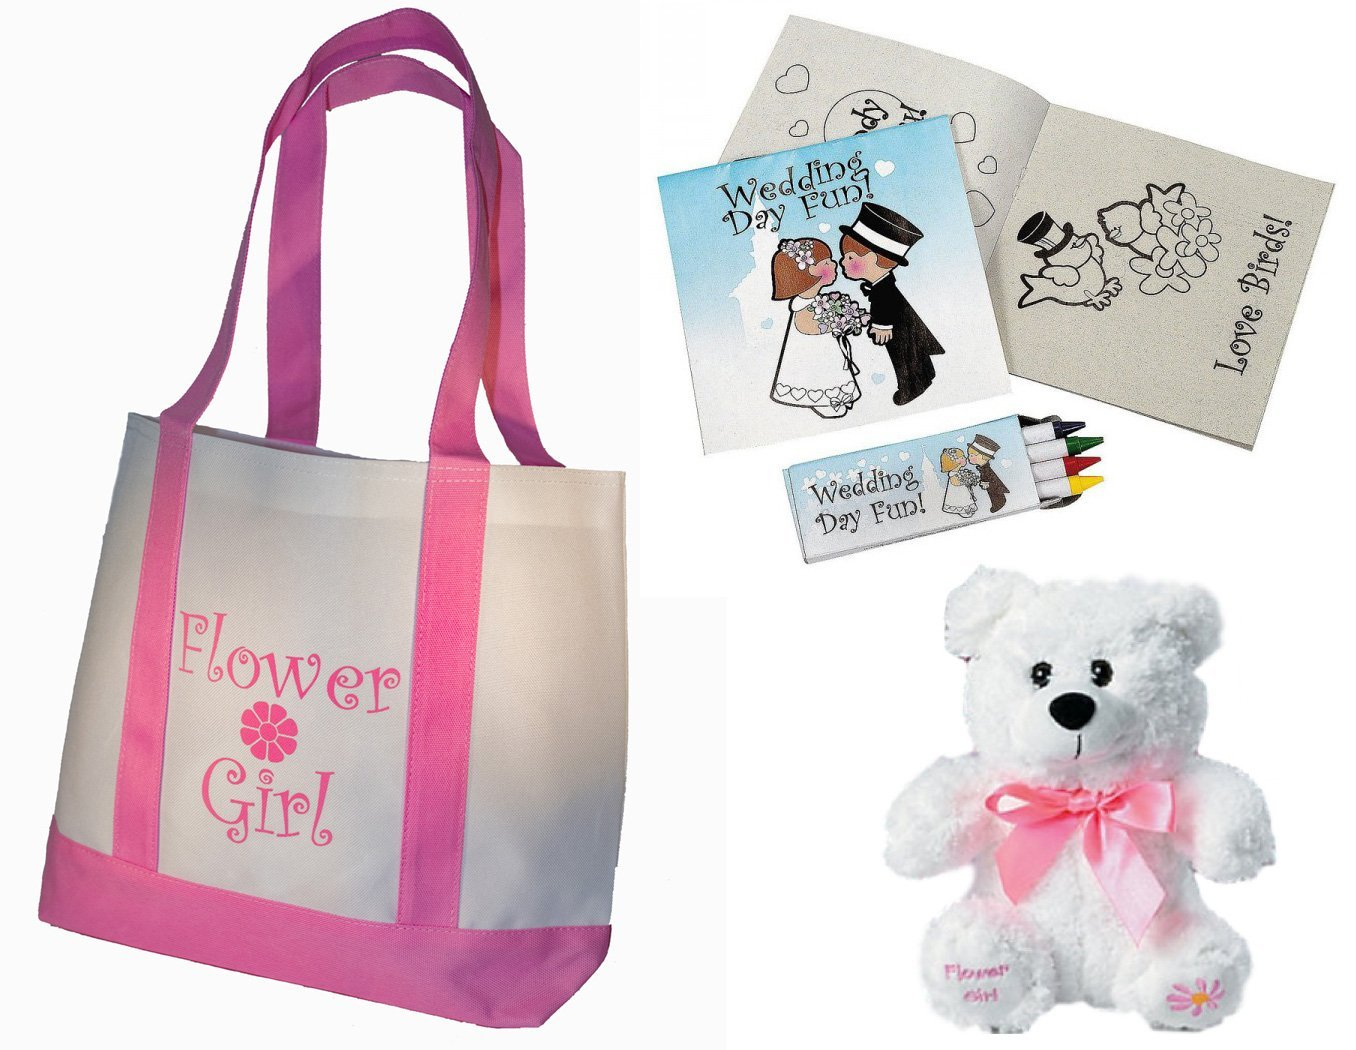 Cheap flower girl gifts find flower girl gifts deals on line at get quotations best flower girl gifts set tote bag teddy bear wedding day kids activity izmirmasajfo